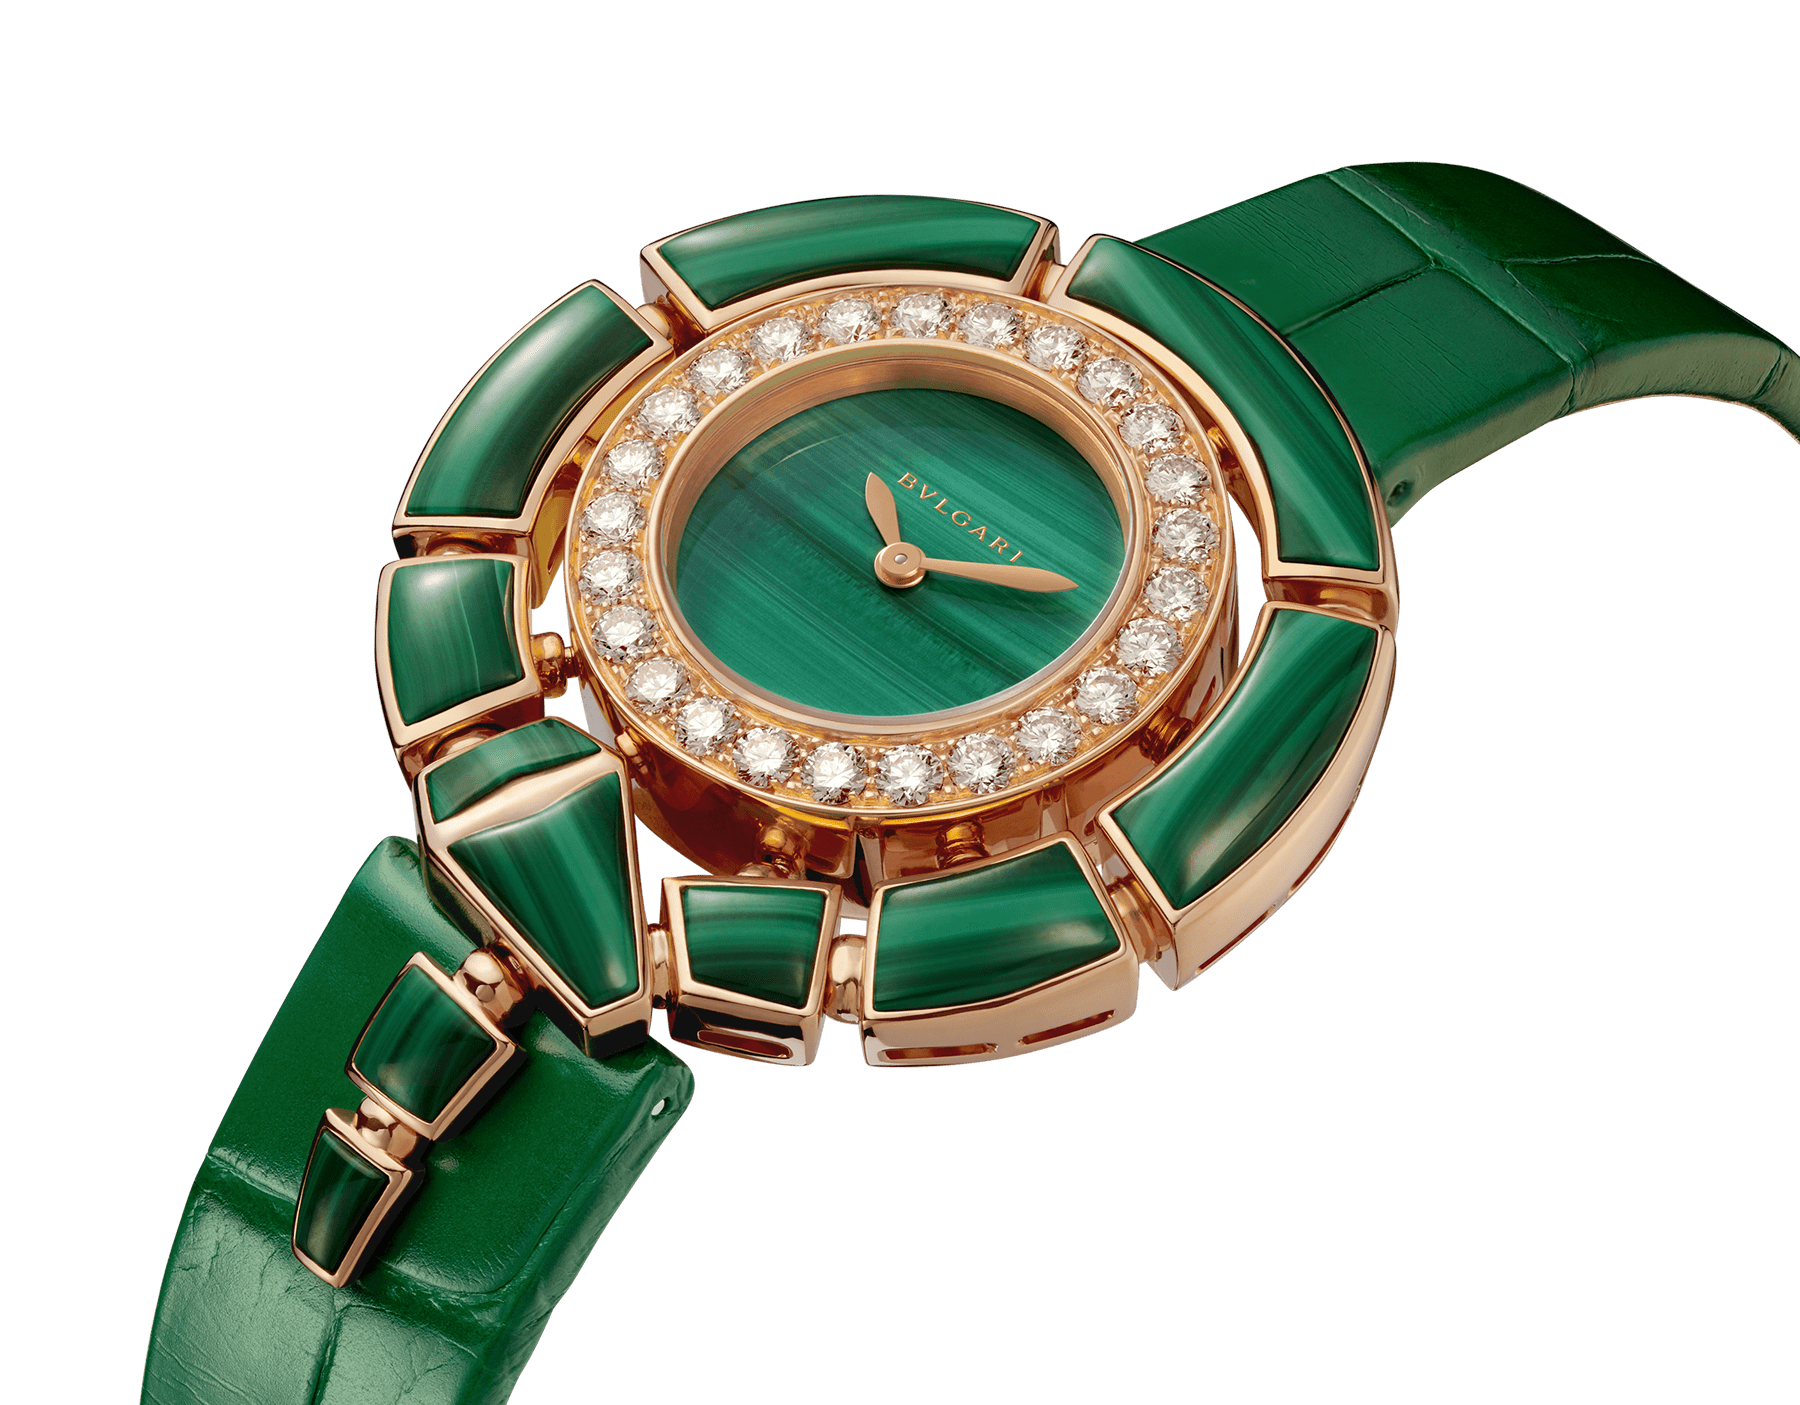 Serpenti Incantati watch with 18 kt rose gold case set with brilliant-cut diamonds and malachite elements, malachite dial and green alligator bracelet 102871 image 2